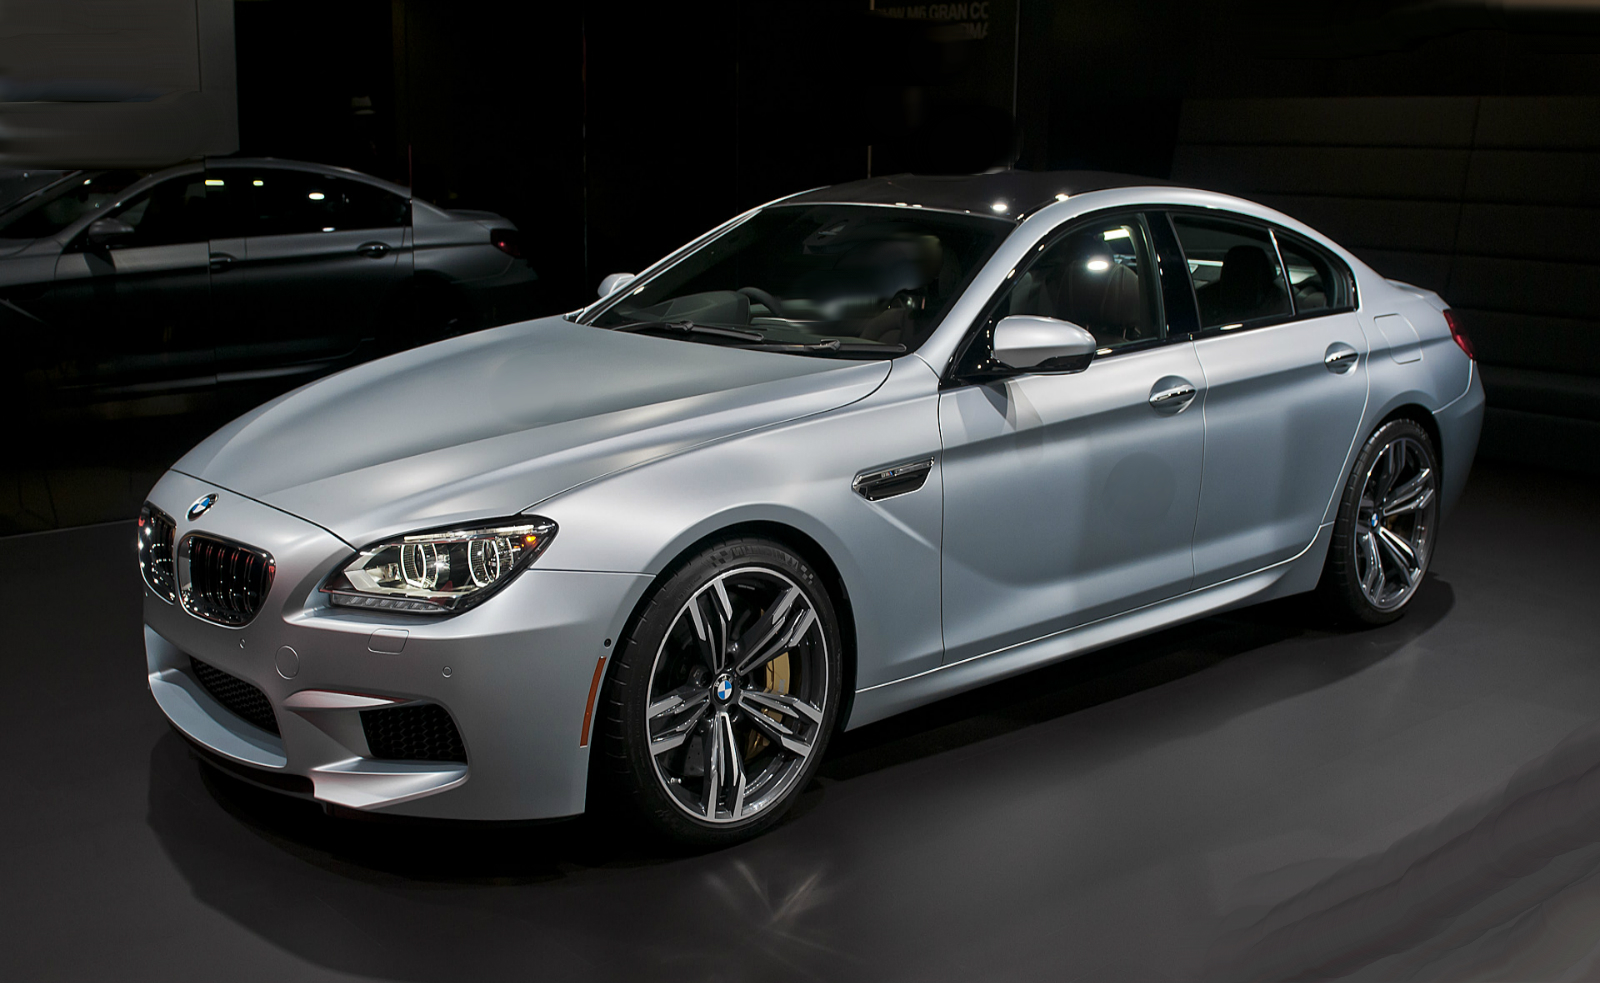 2014 bmw m6 gran coupe review. Black Bedroom Furniture Sets. Home Design Ideas